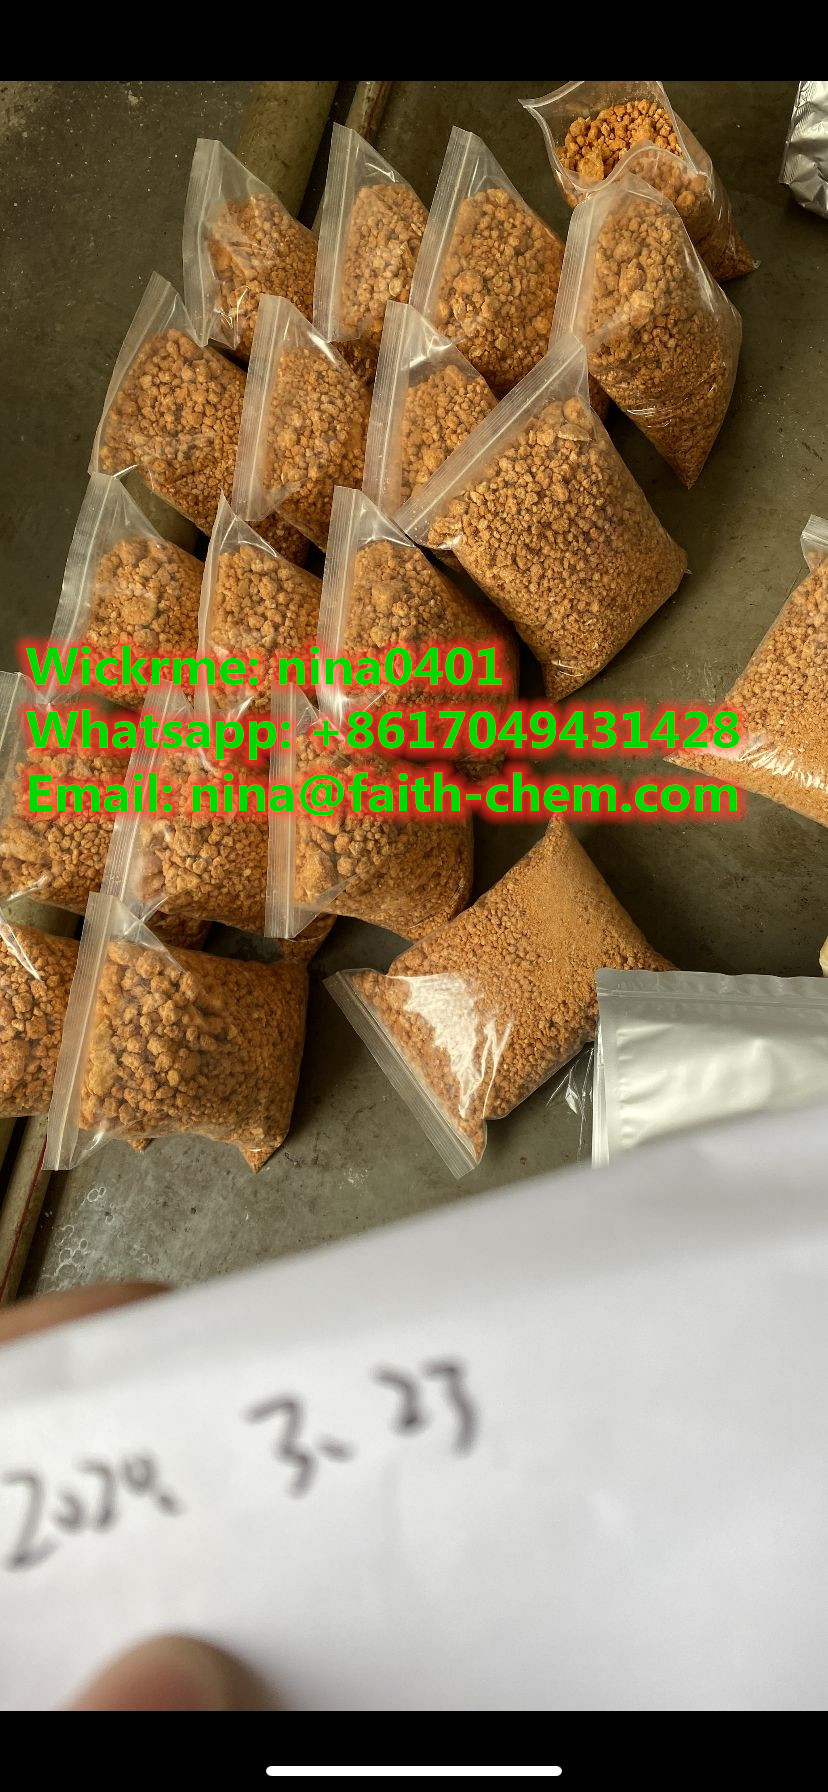 High effect 4FMDMB-BICA for chemical research 4f-mdmb-bica (wickrme: nina0401)